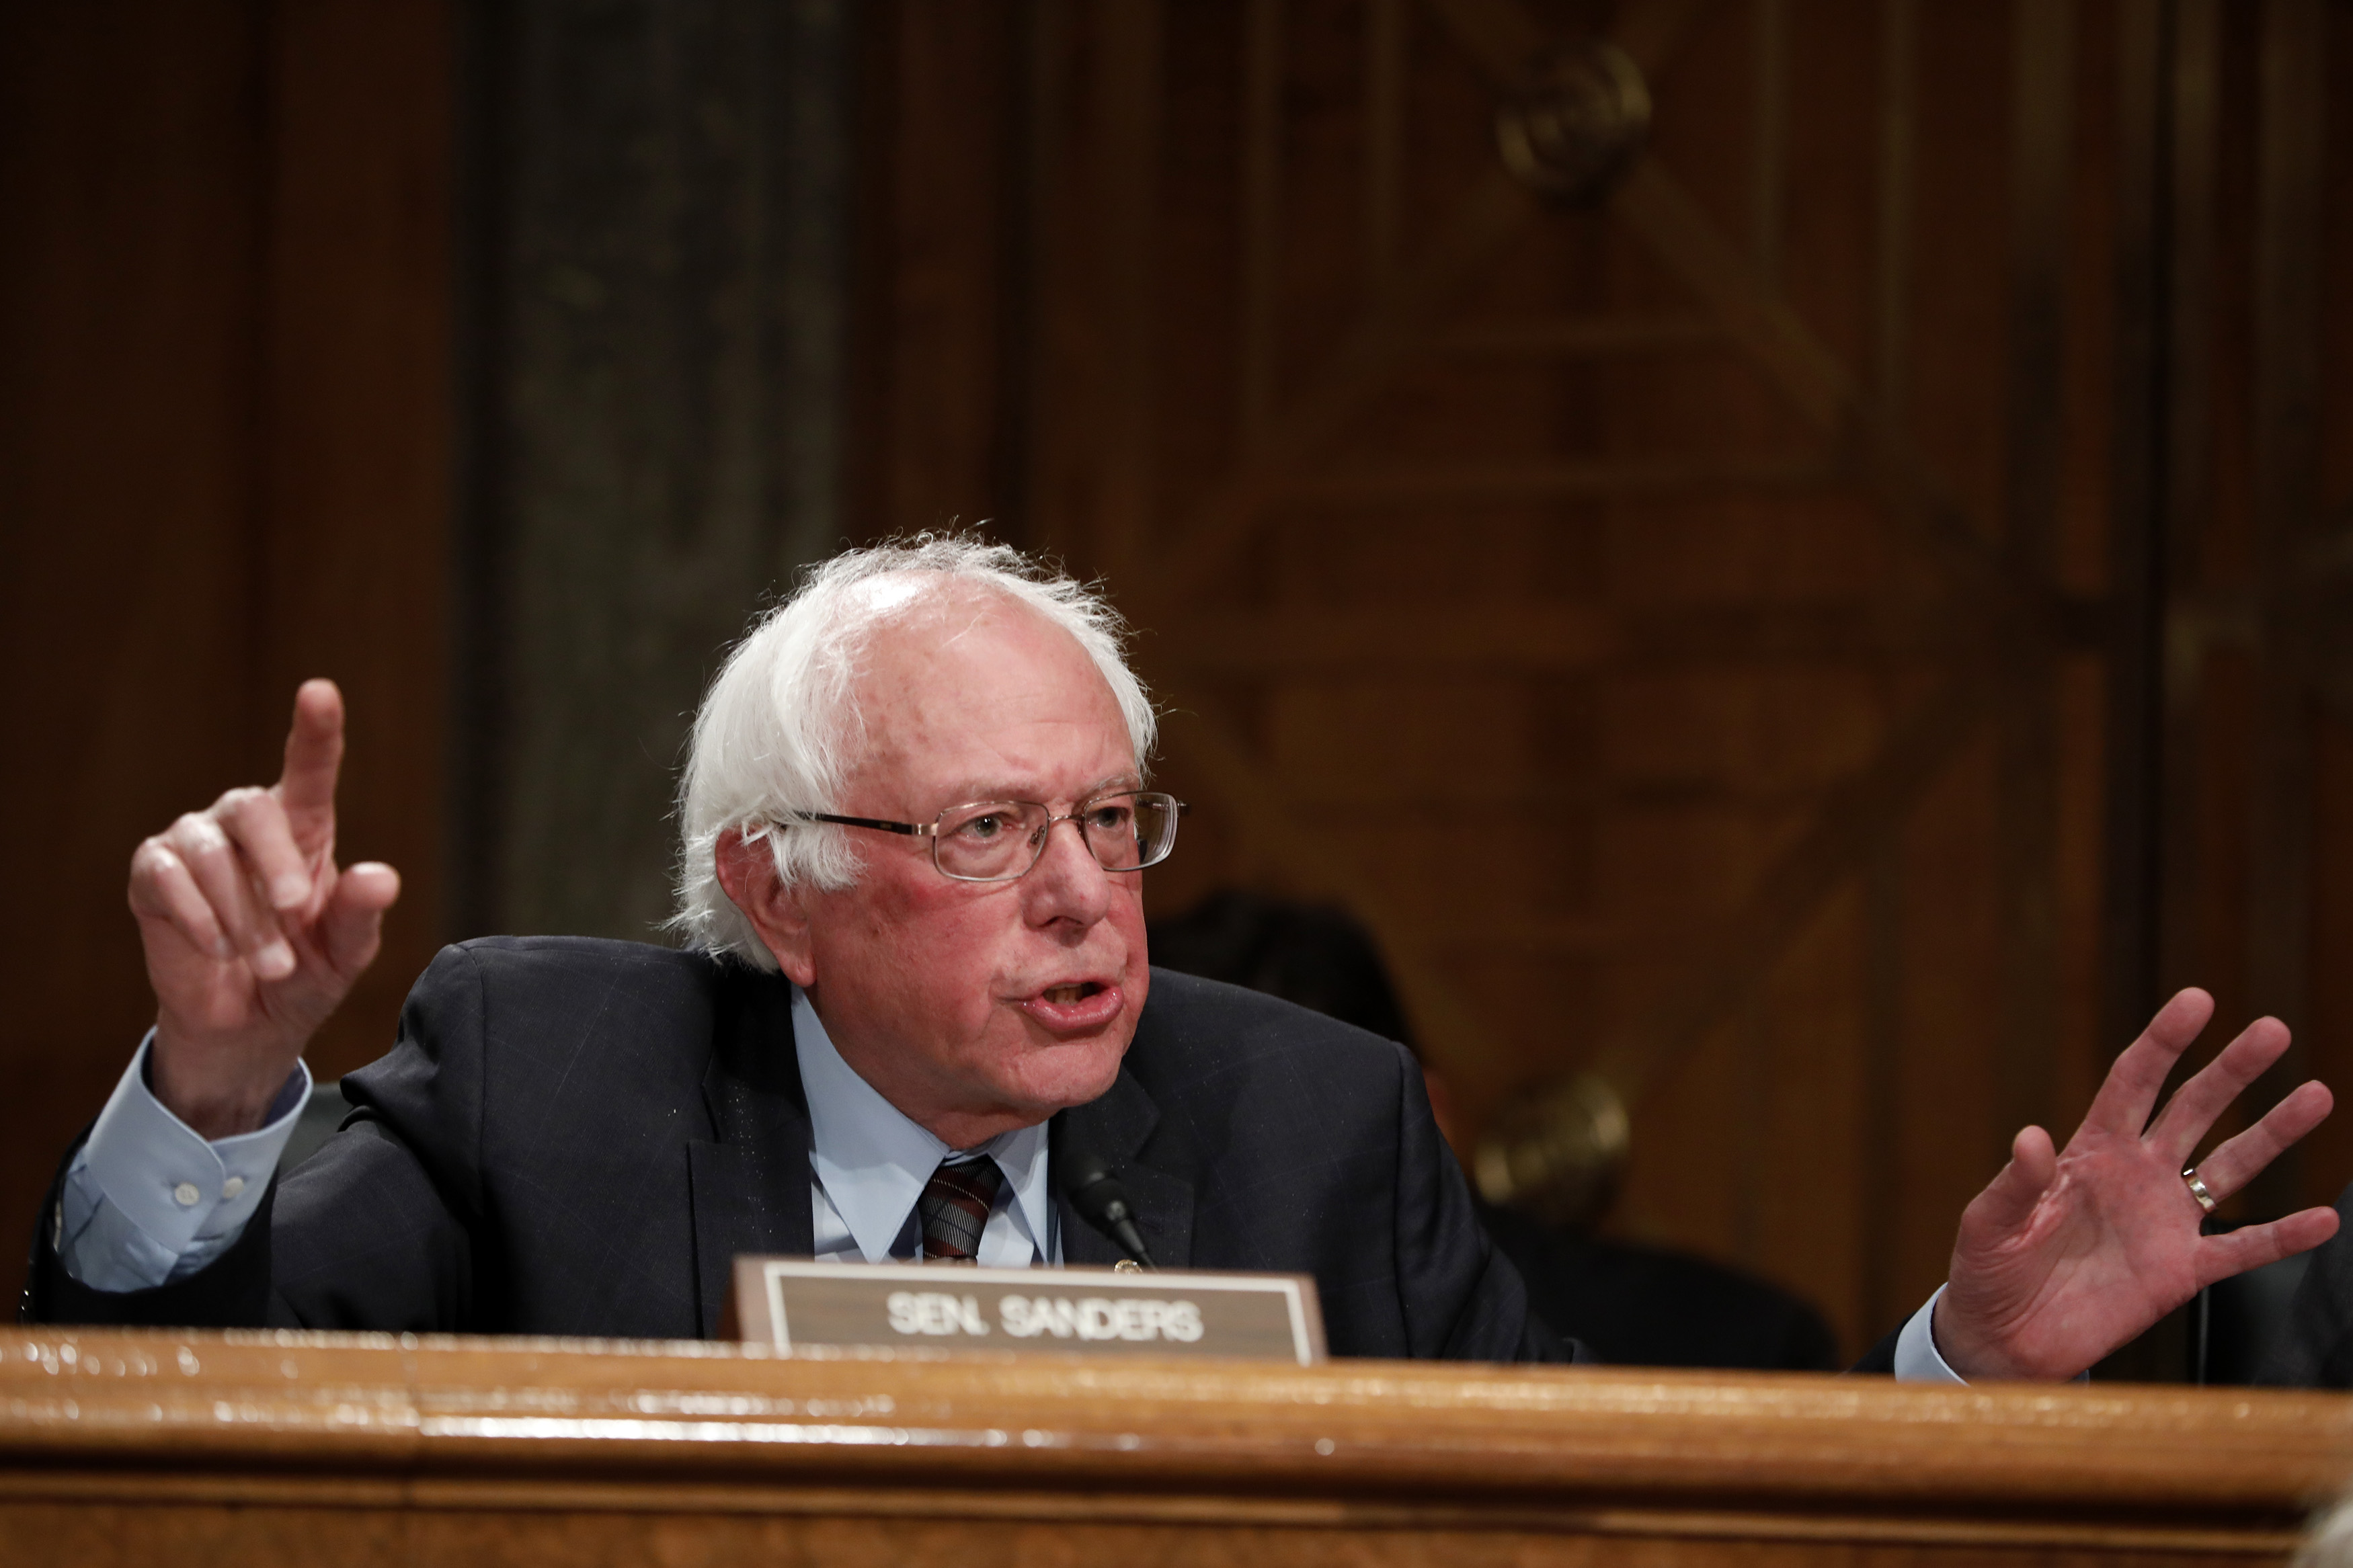 Bernie Sanders called out Jeff Bezos for poor treatment of Amazon workers. In a rare move, the company fired back.